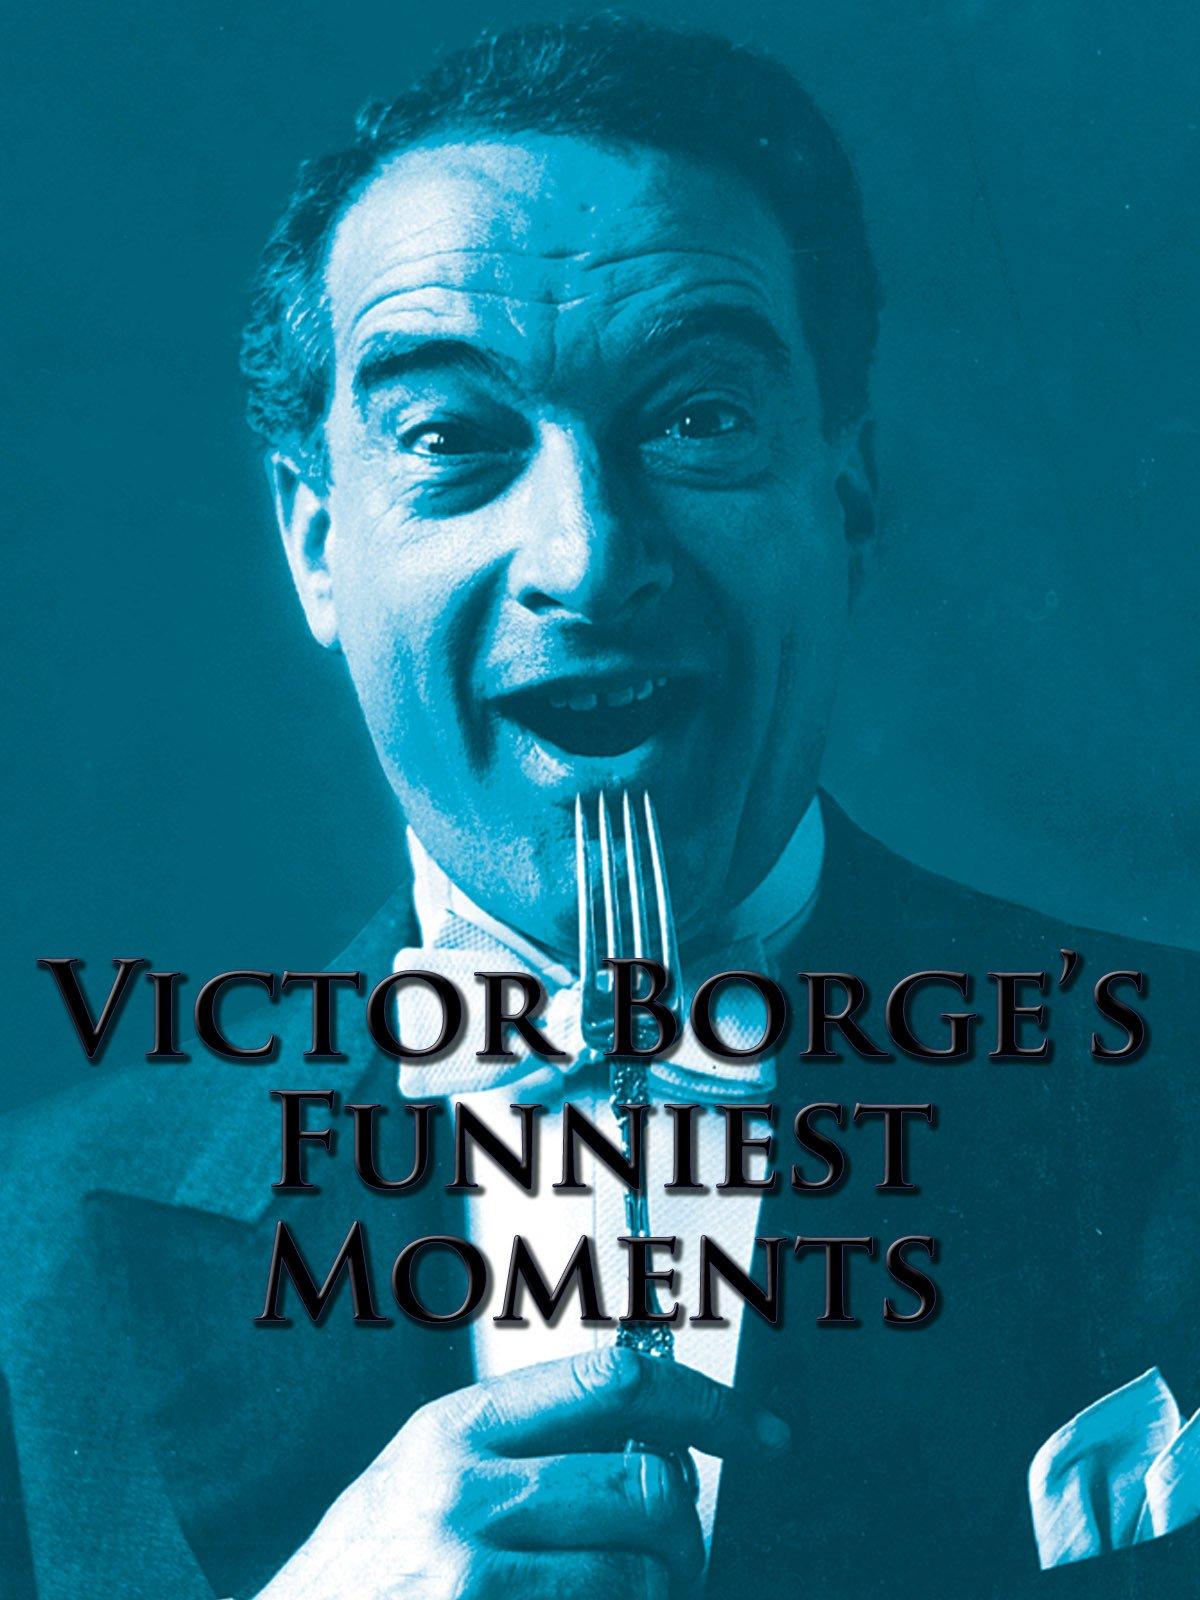 Victor Borge's Funniest Moments on Amazon Prime Video UK